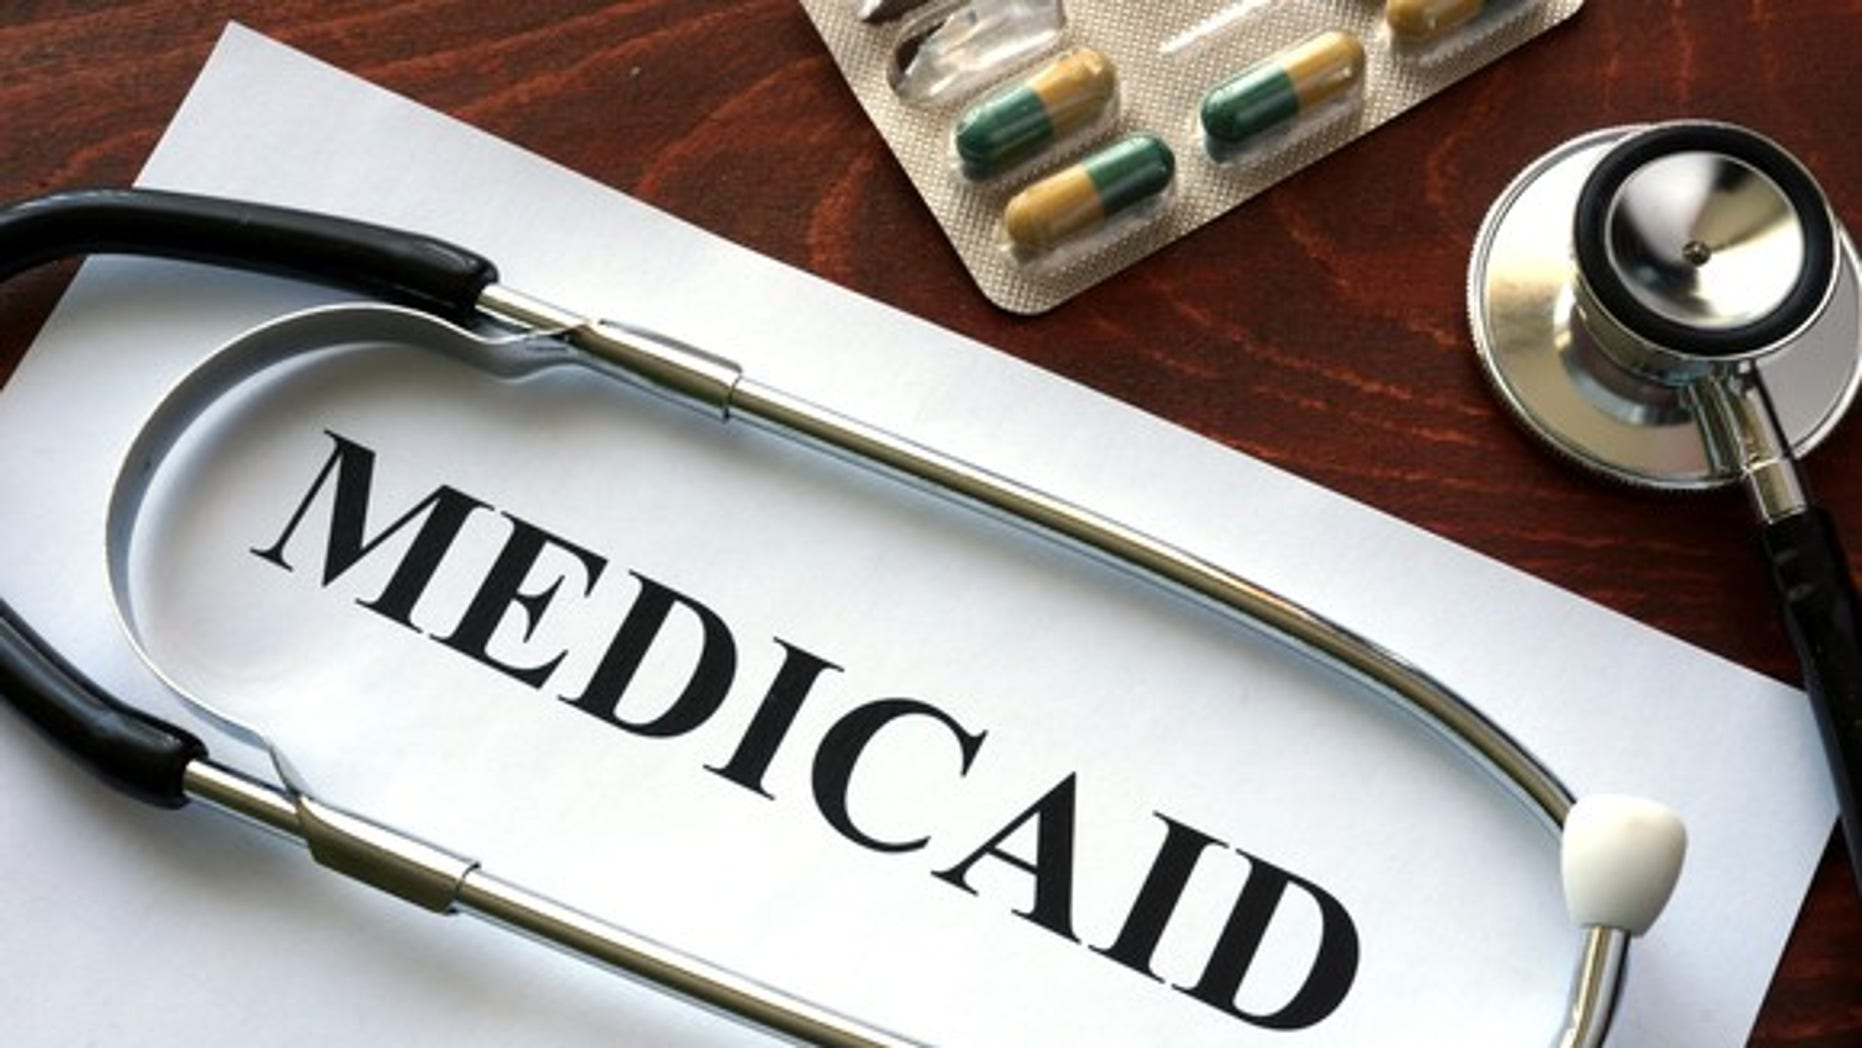 Judge strikes down Medicaid work requirements, again